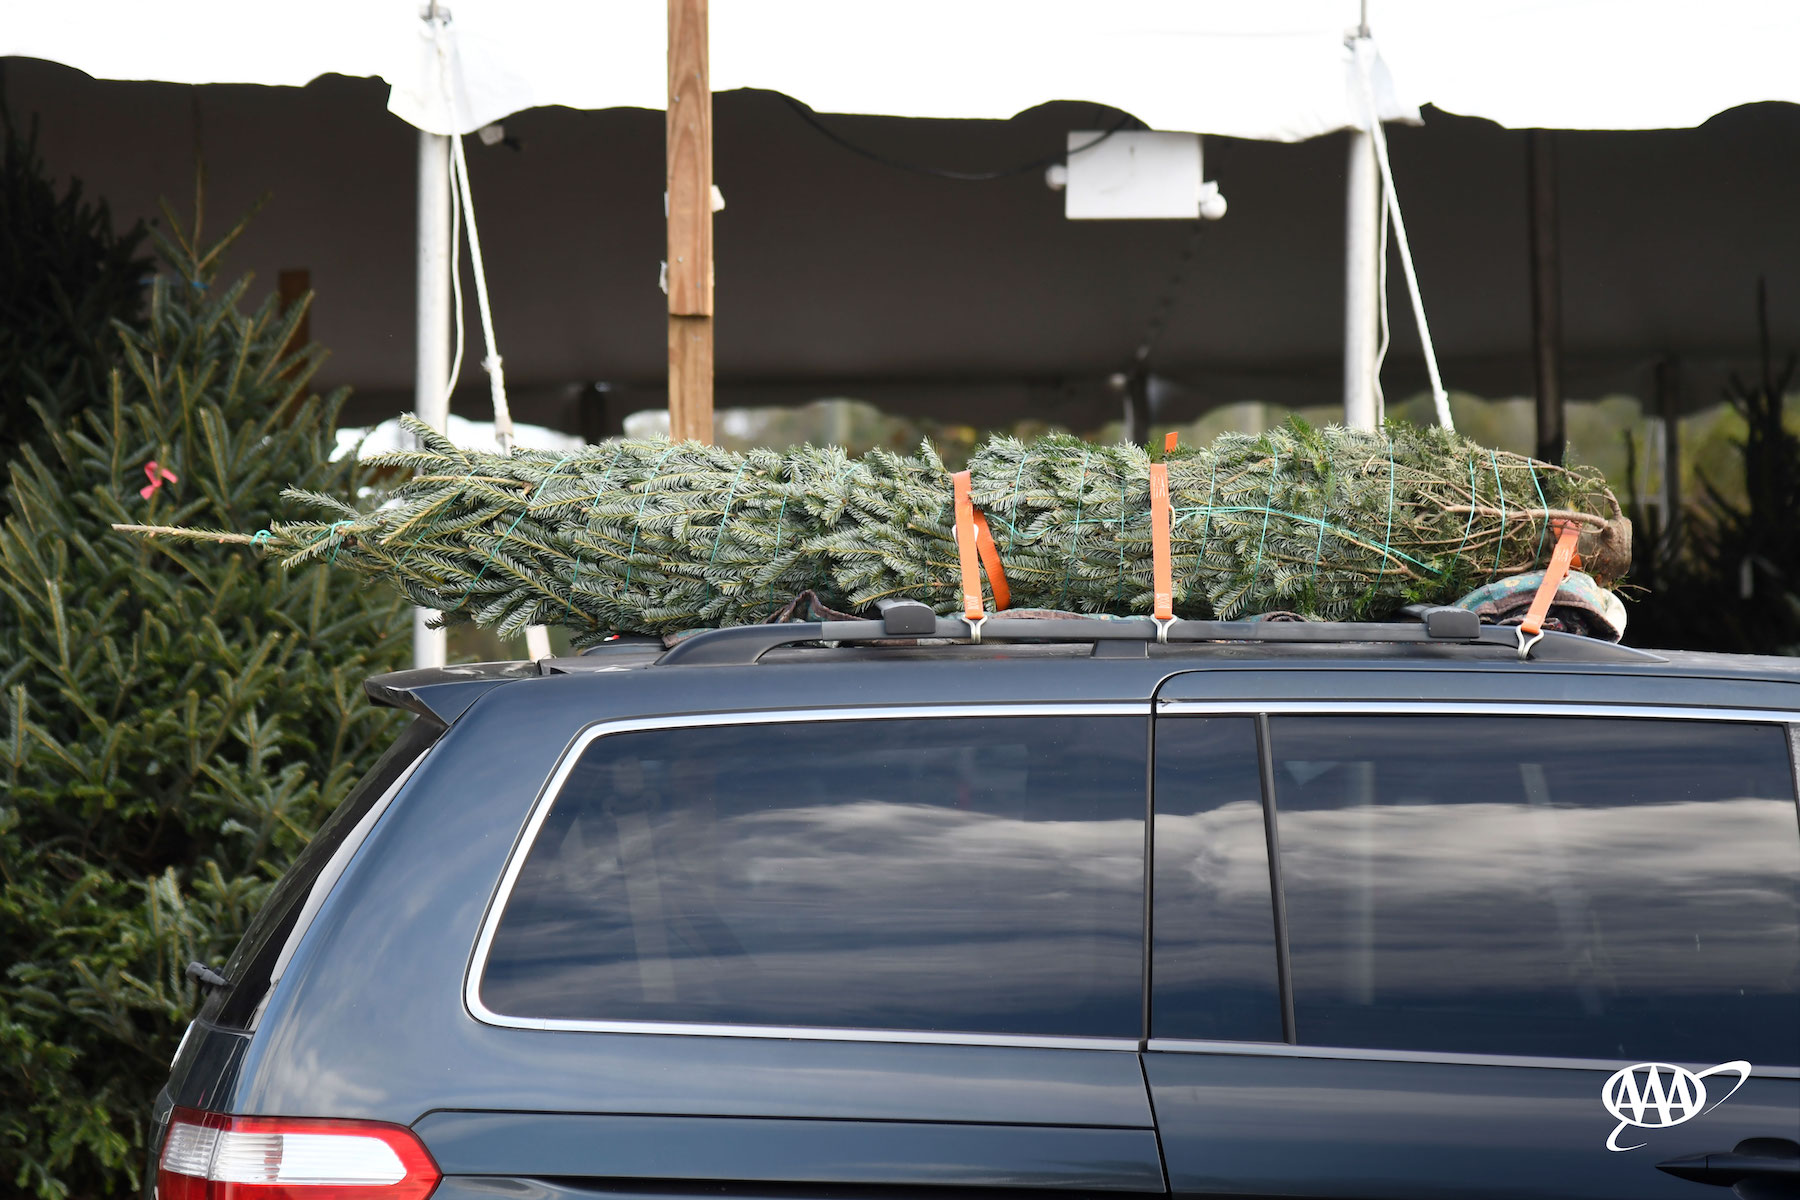 Properly secure your Christmas tree this year. (AAA photo)